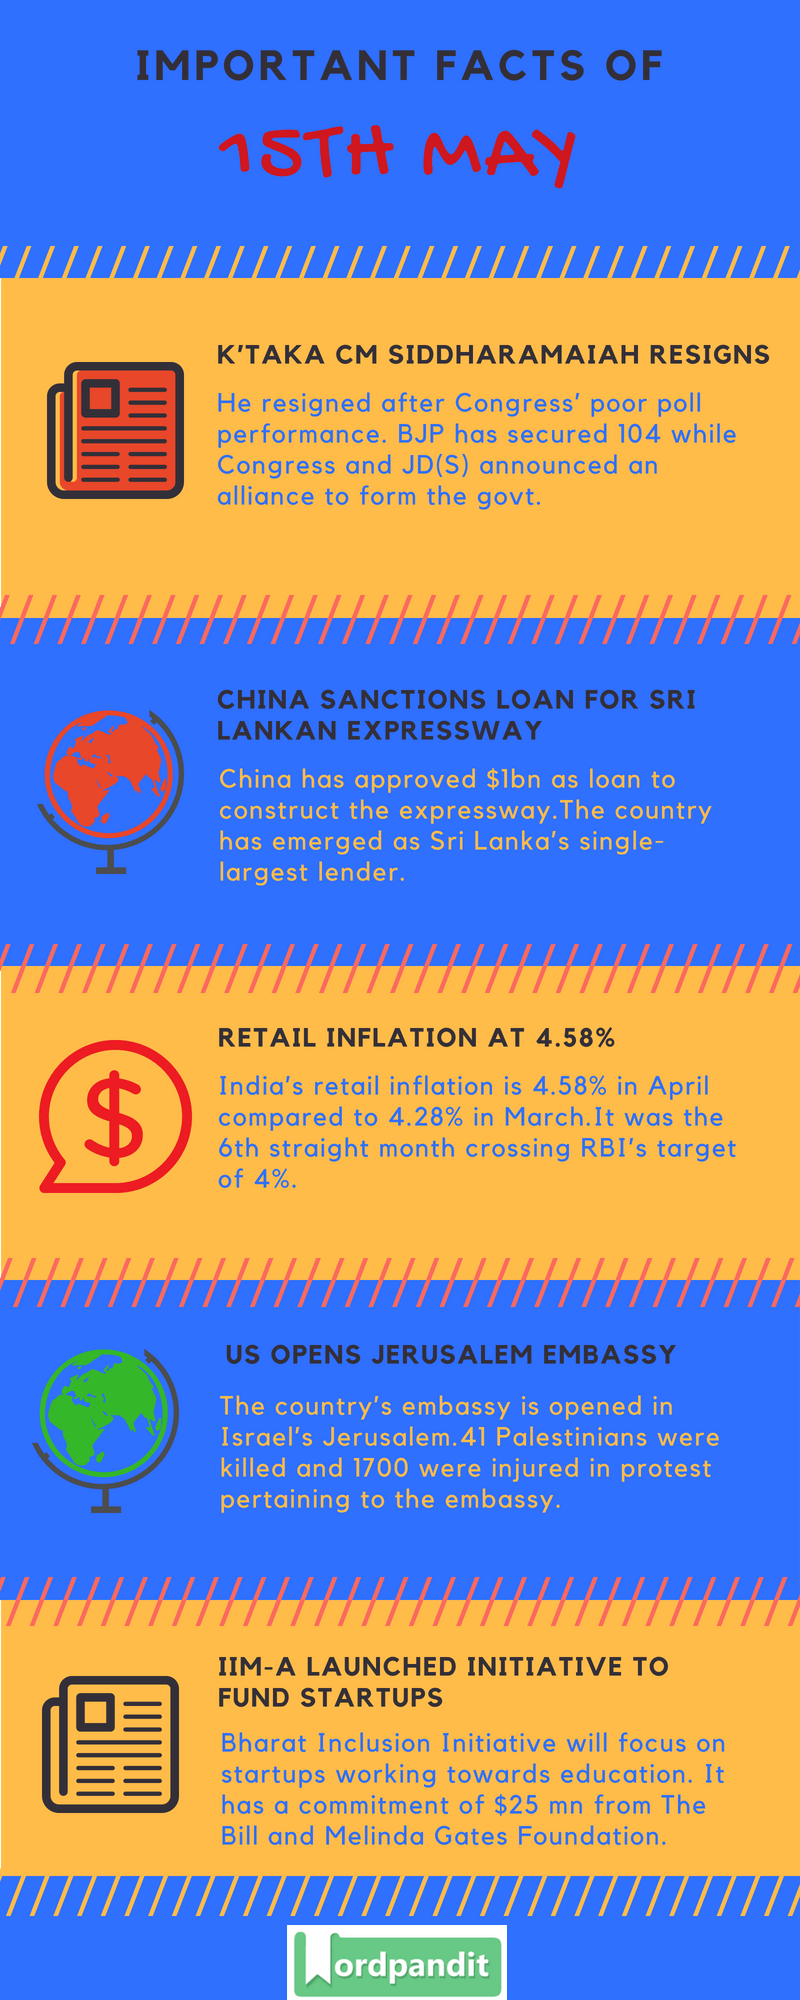 Daily Current Affairs 15 May 2018 Current Affairs Quiz May 15 2018 Current Affairs Infographic